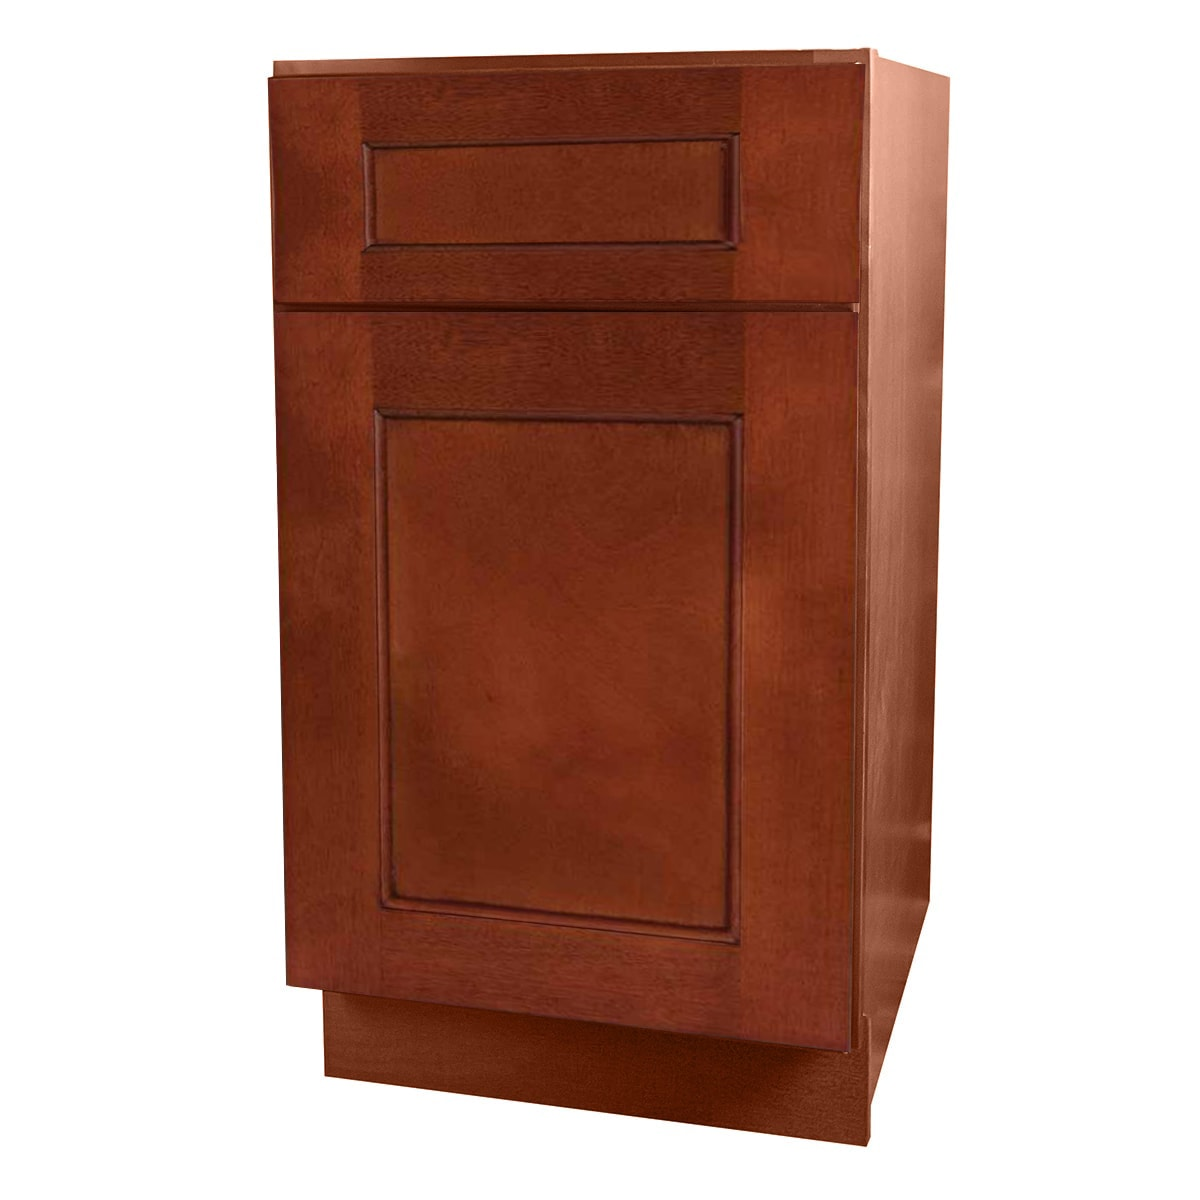 Cherry Shaker Kitchen Cabinets